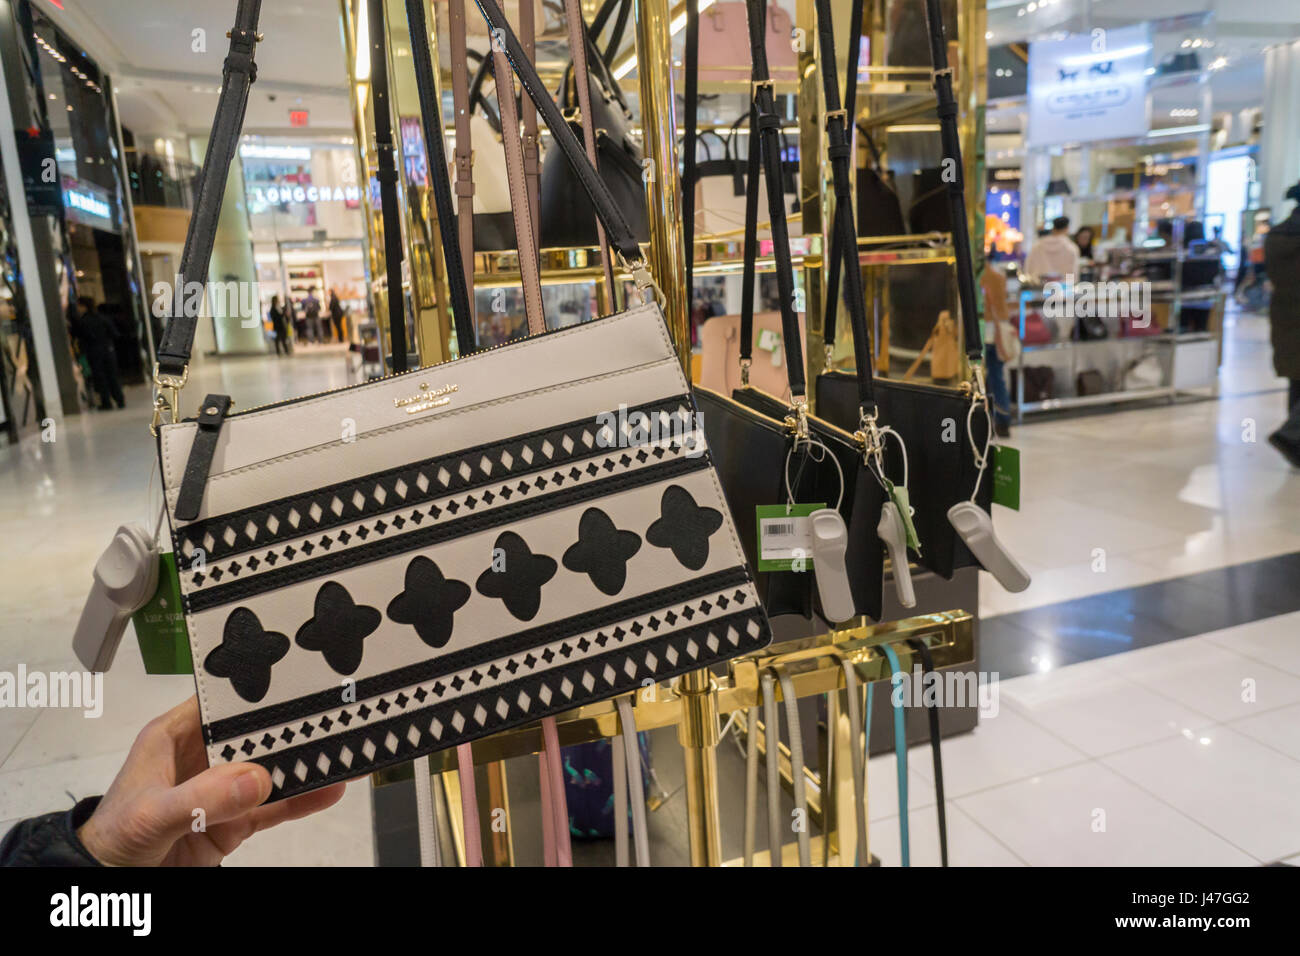 The Kate Spade boutique within Macy's department store in New York with the Coach boutique behind it on Monday, - Stock Image